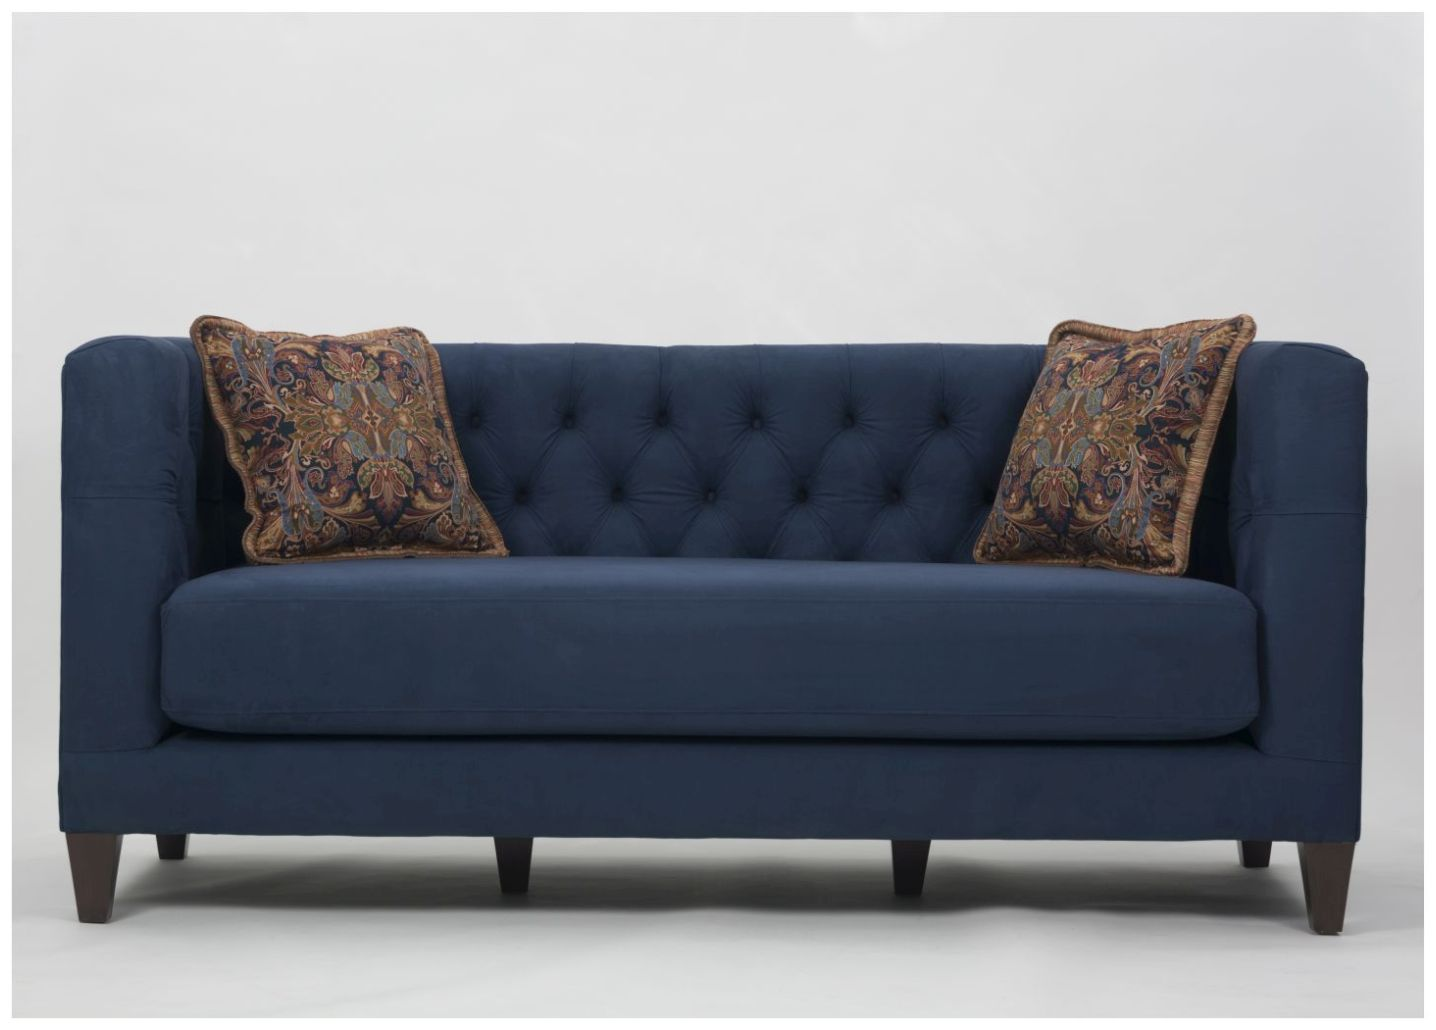 Custom Button Tufted Sofa with Accent Pillows